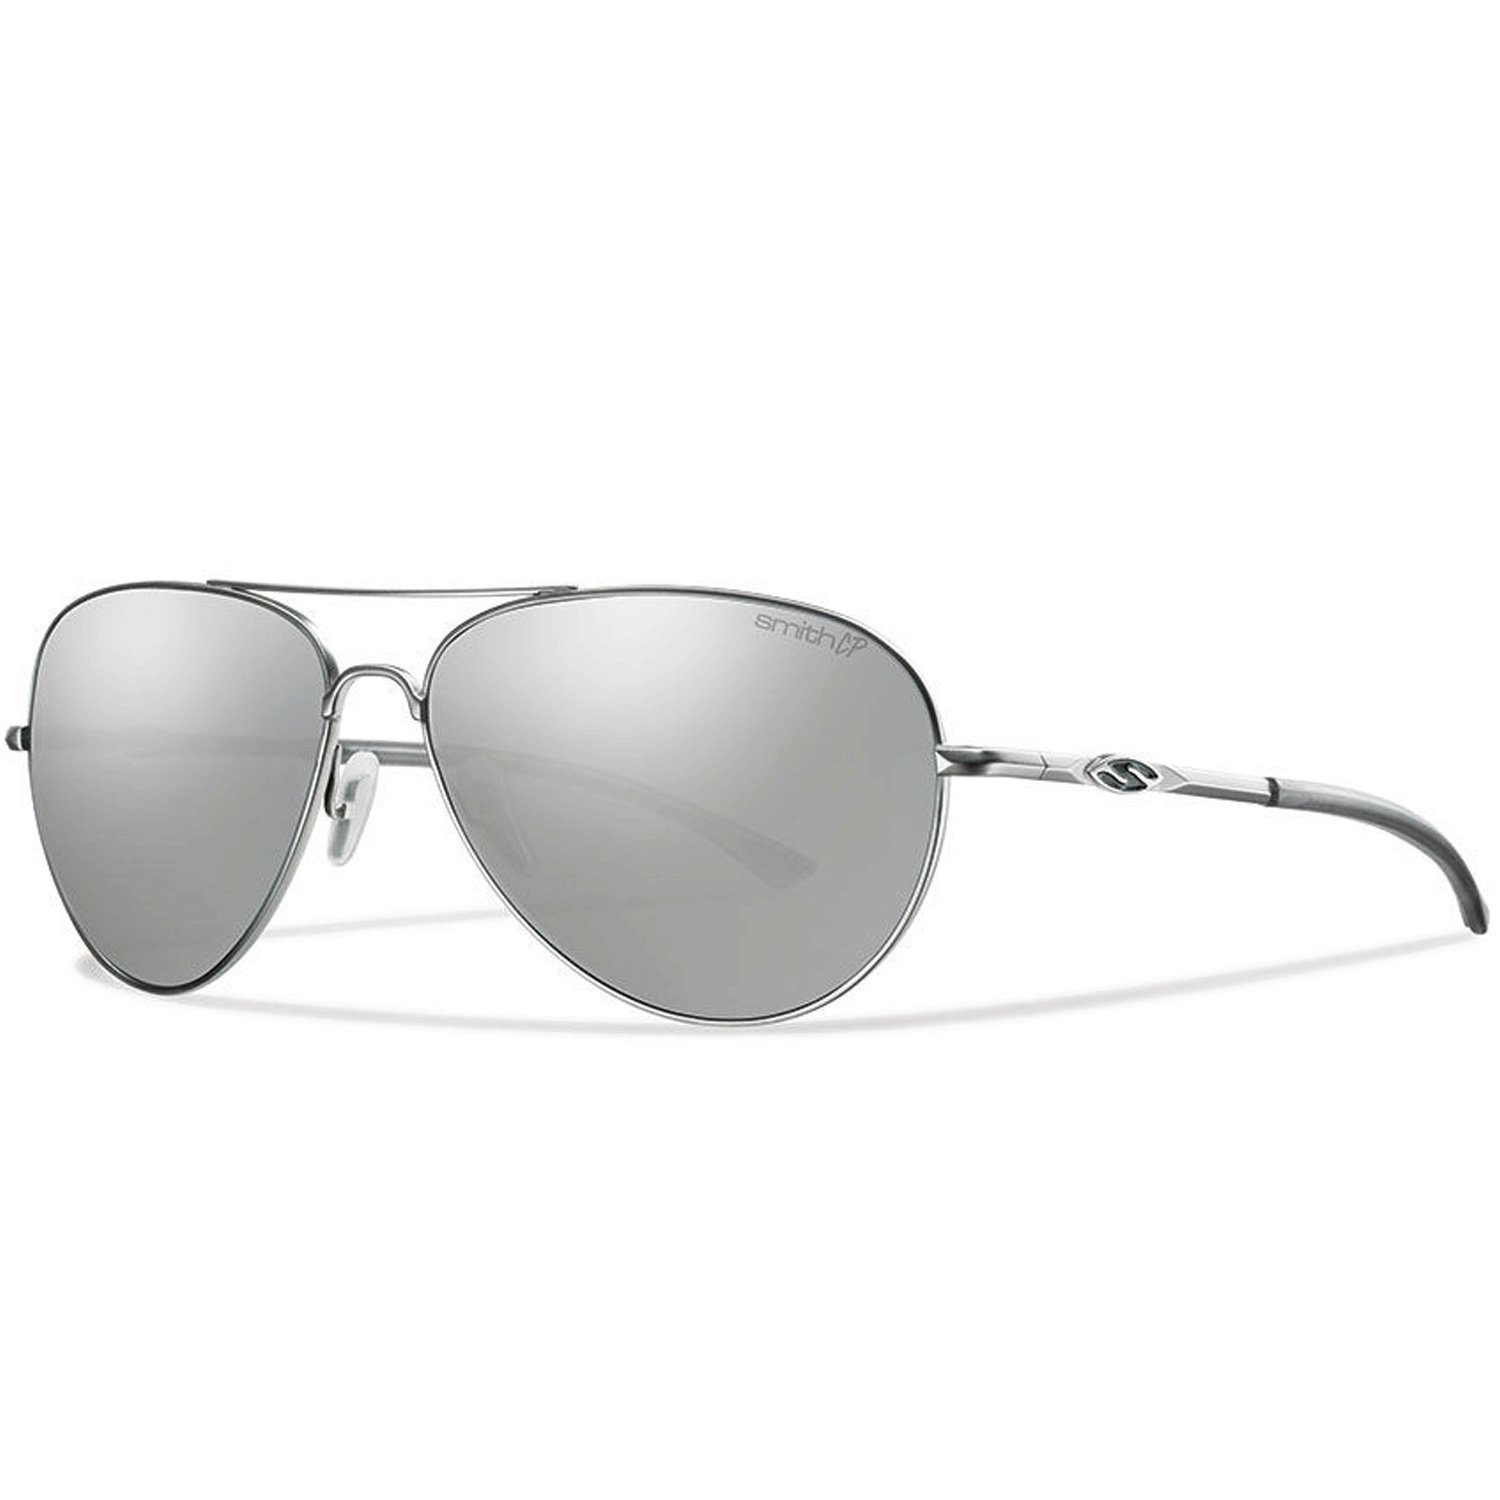 d48dfc844b Amazon.com  Smith Optics Nomad Sunglasses